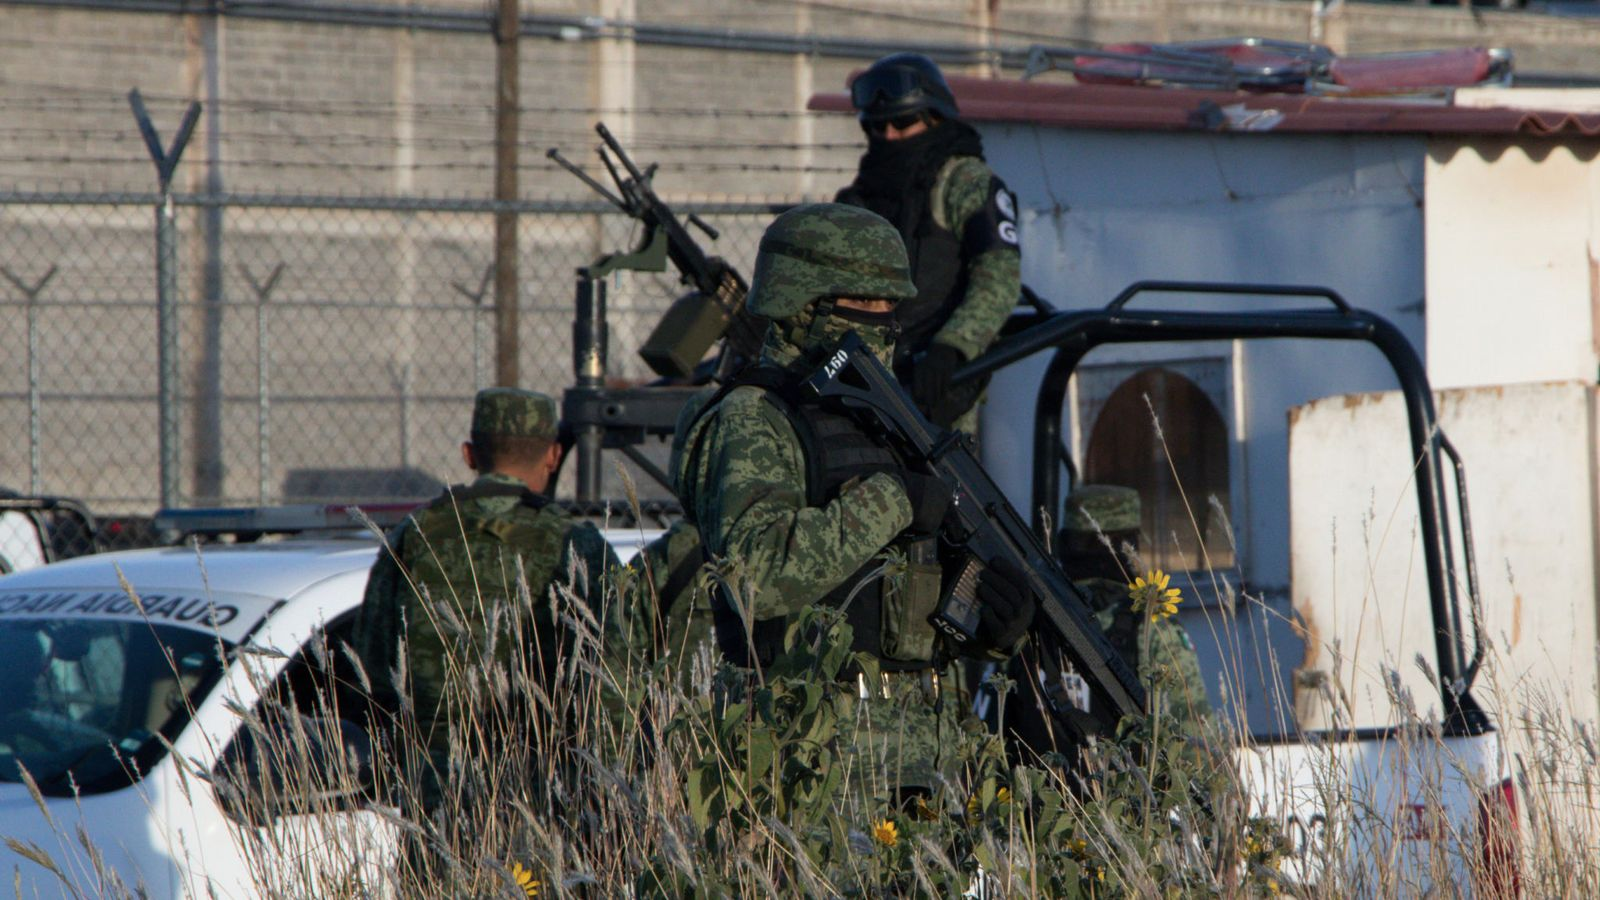 16 inmates killed, 5 wounded in bloody Mexican prison riot